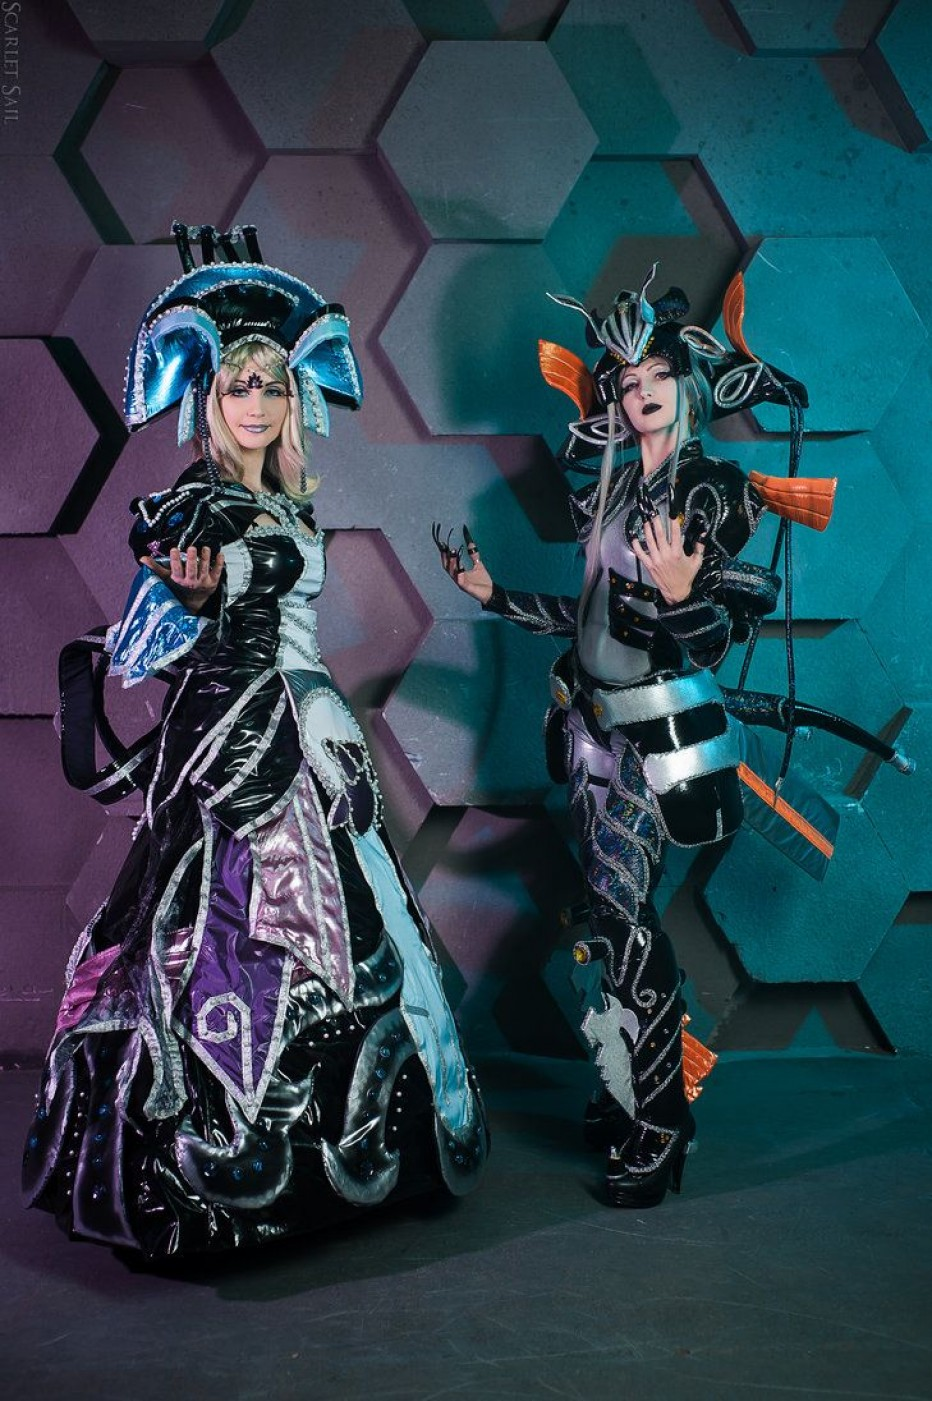 Meyneth-and-Vanea-Xenoblade-Cosplay-Gamers-Heroes-2.jpg